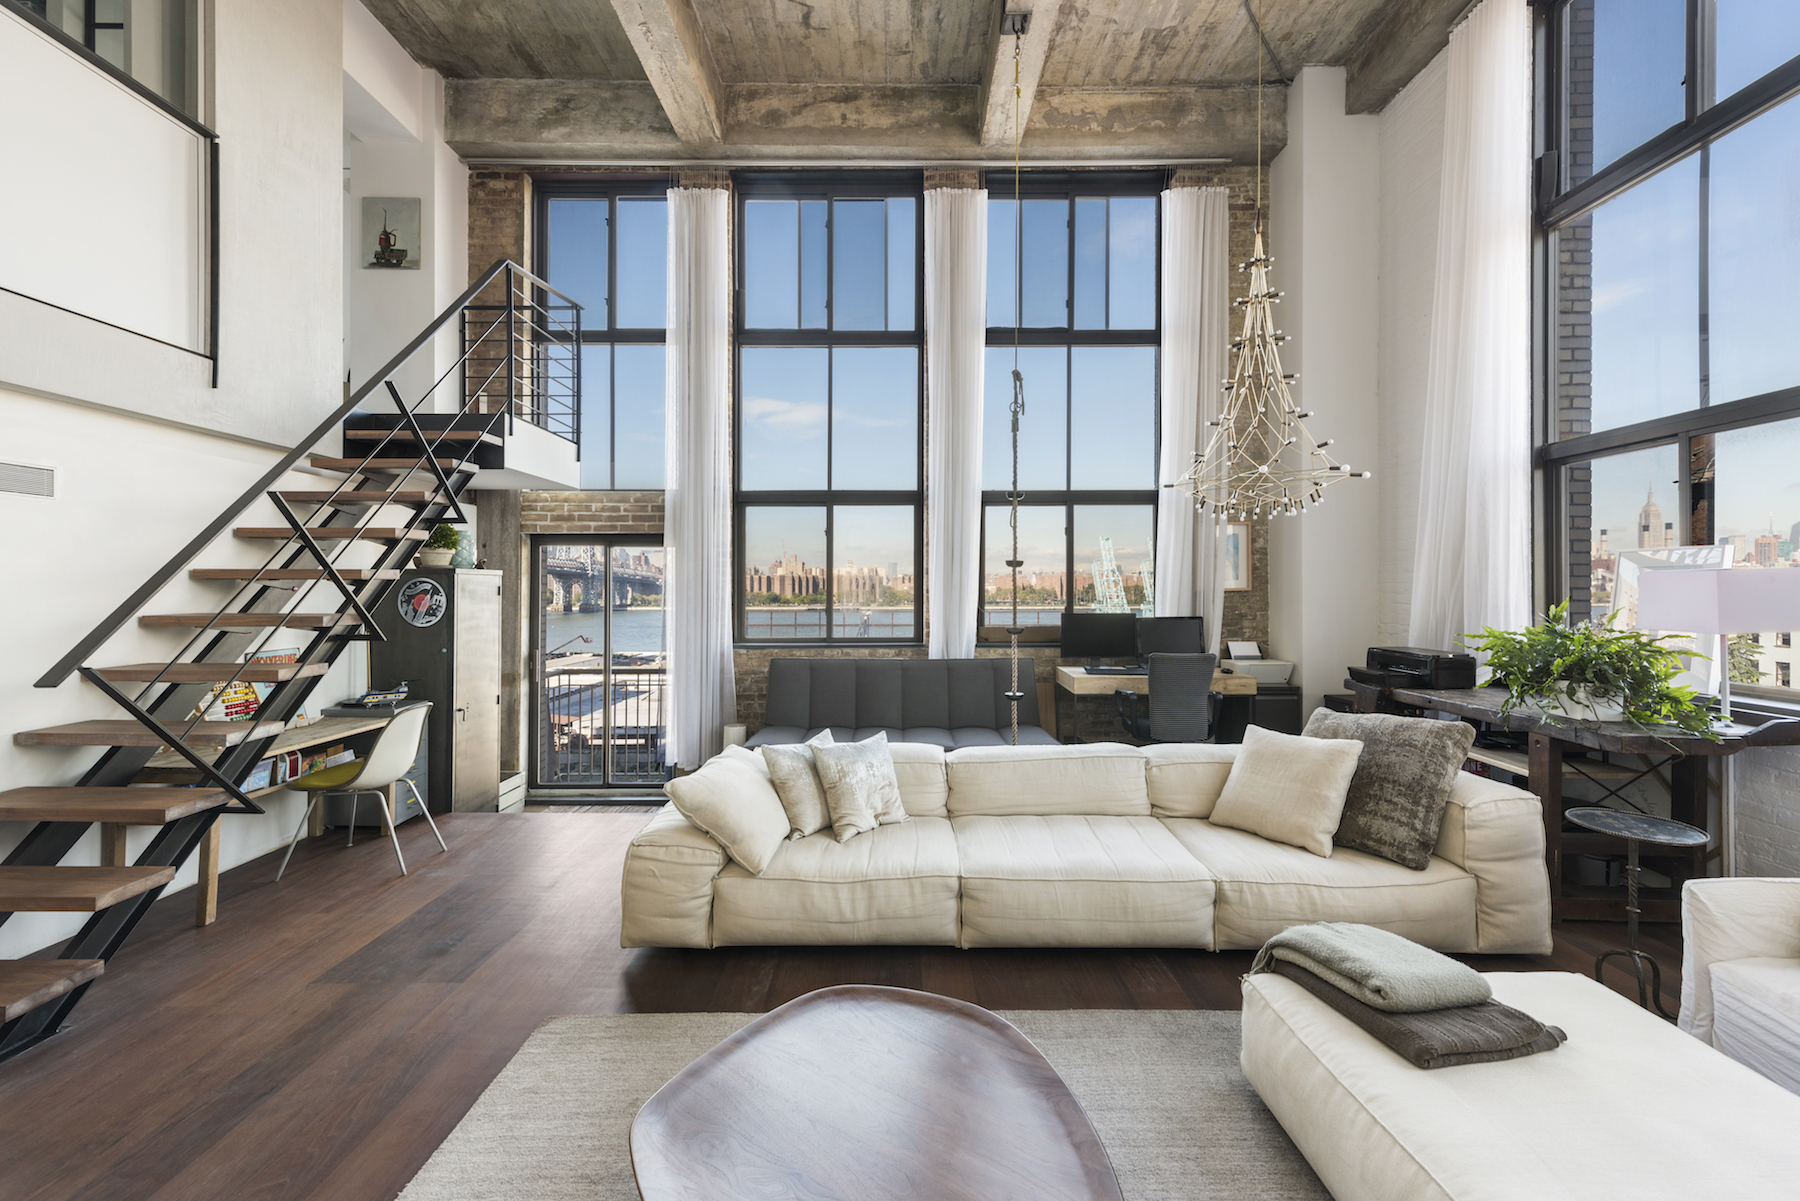 The Esquire Building, 330 Wythe Avenue, 3J was listed for $5,500,000 with Douglas Elliman